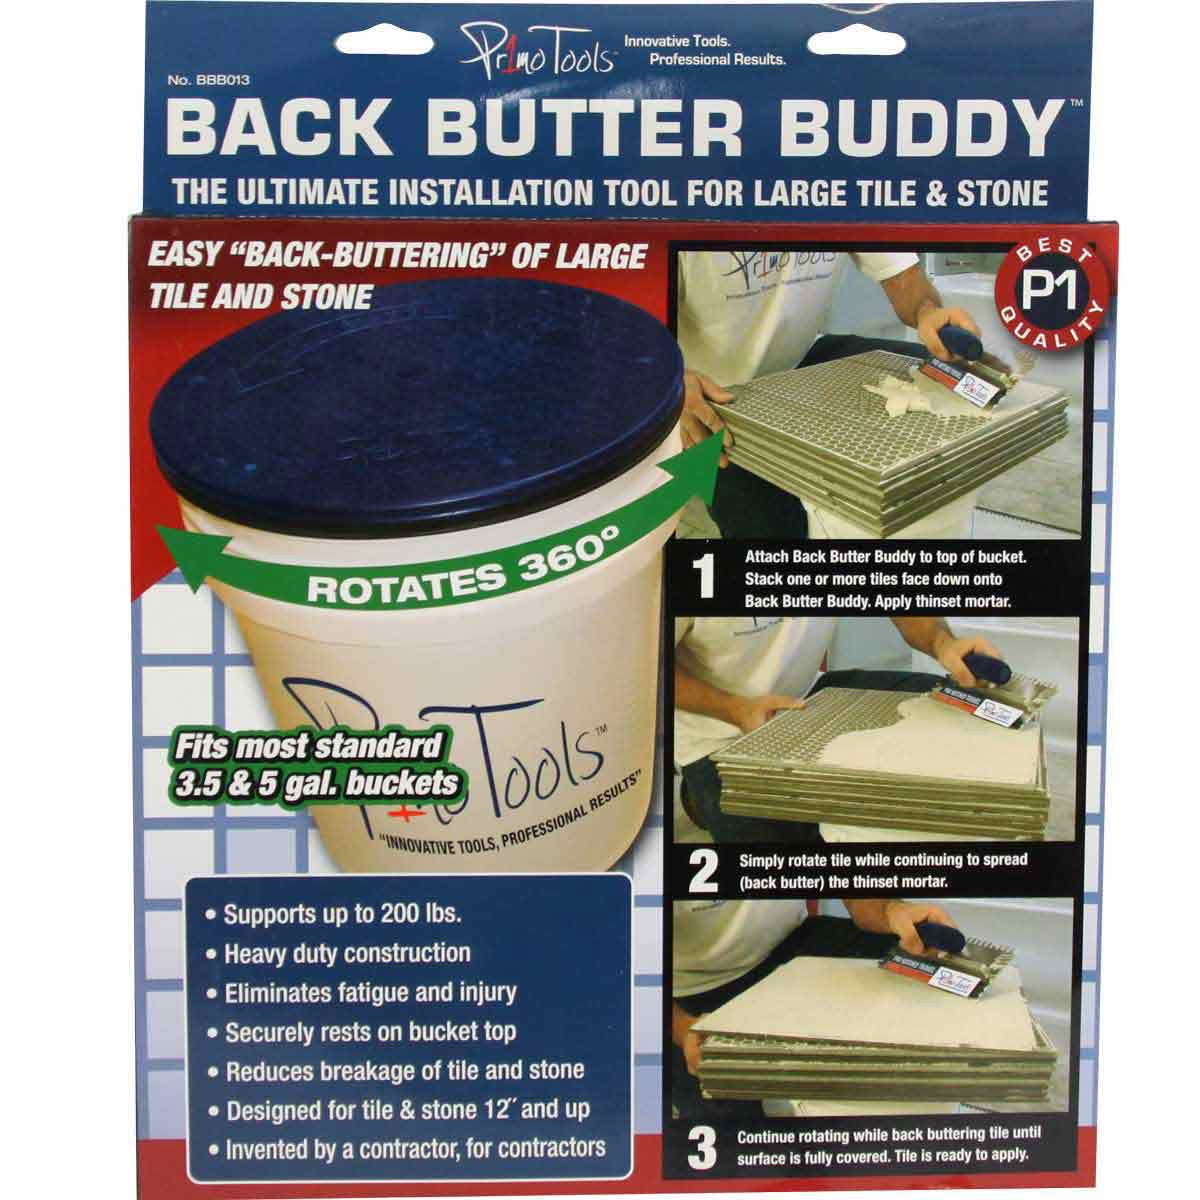 Back Butter Buddy instructions